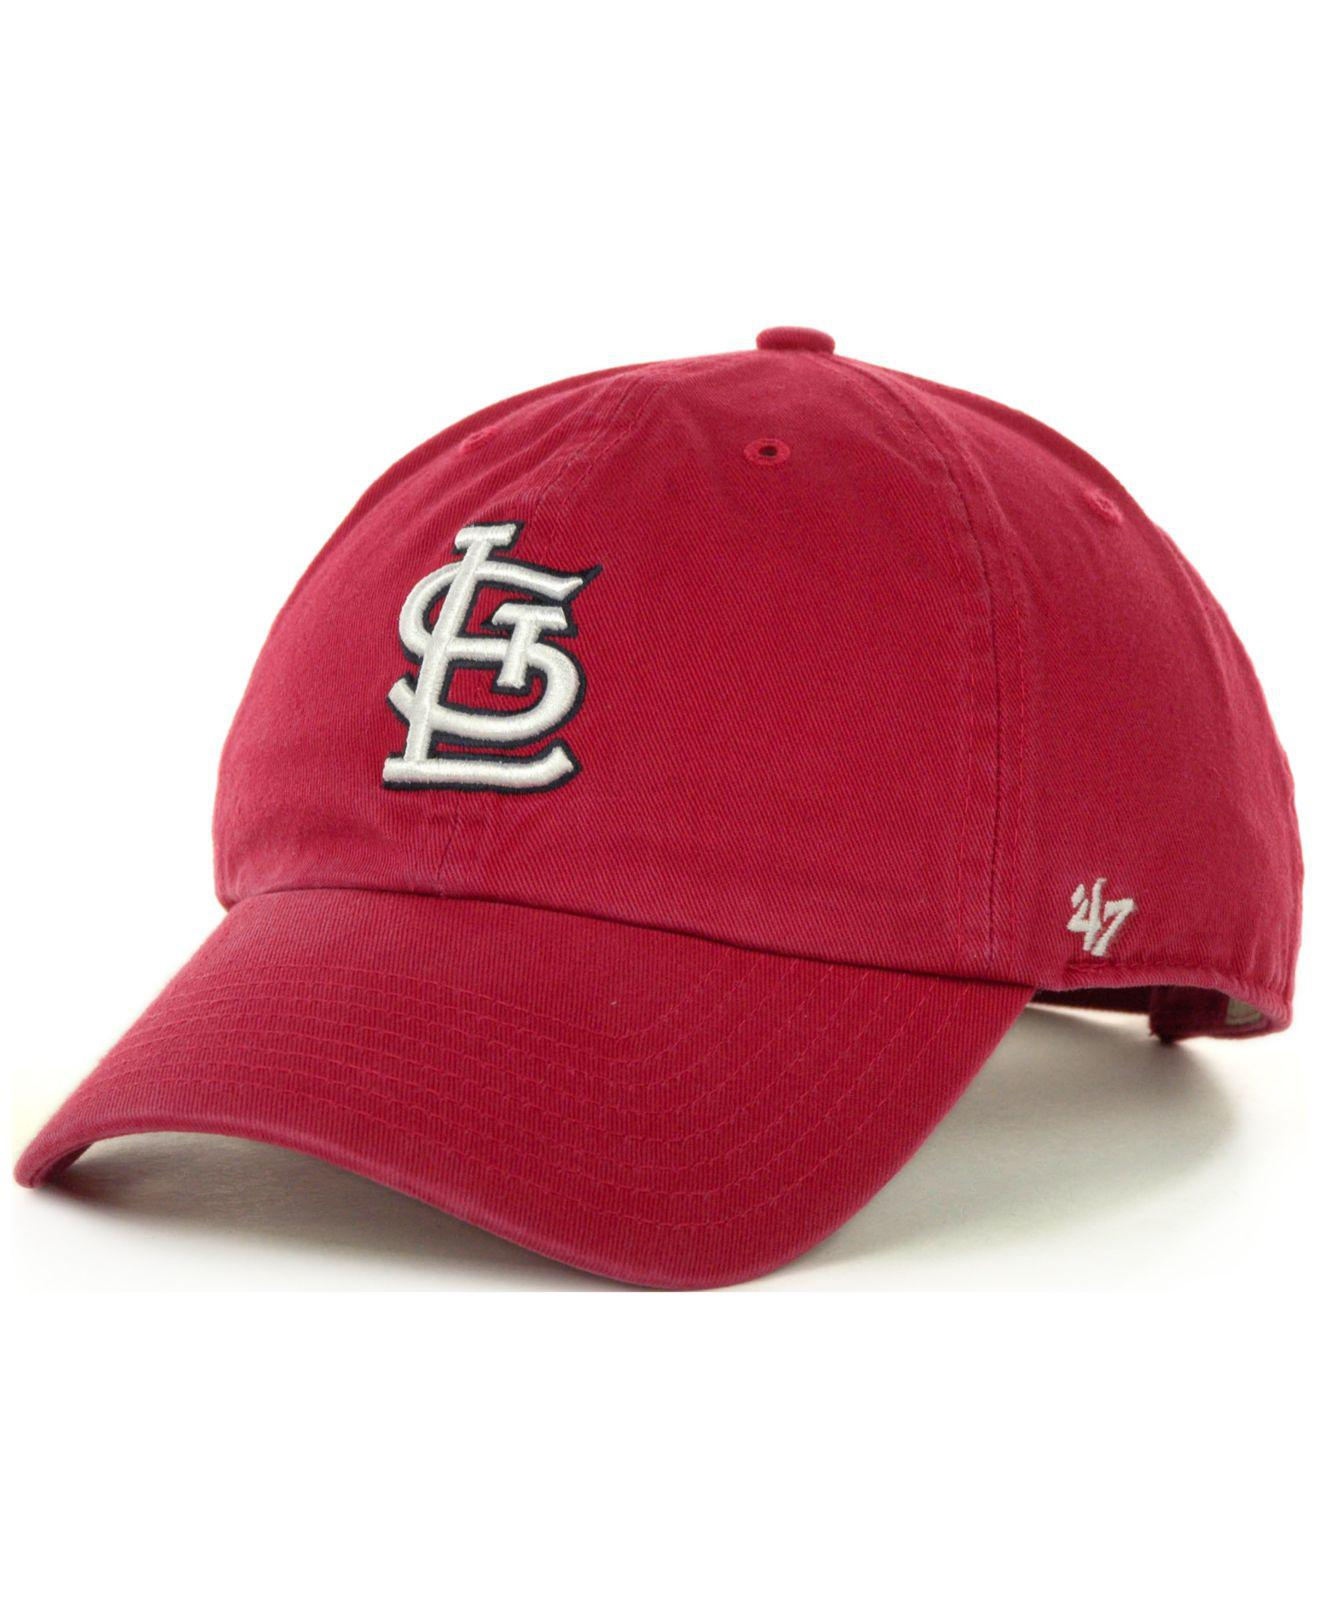 buy online f9456 8d248 ... black white 59fifty cap 20814117 2018 new 7a006 ac8d5  aliexpress lyst  47 brand st. louis cardinals clean up hat in red for men c5d96